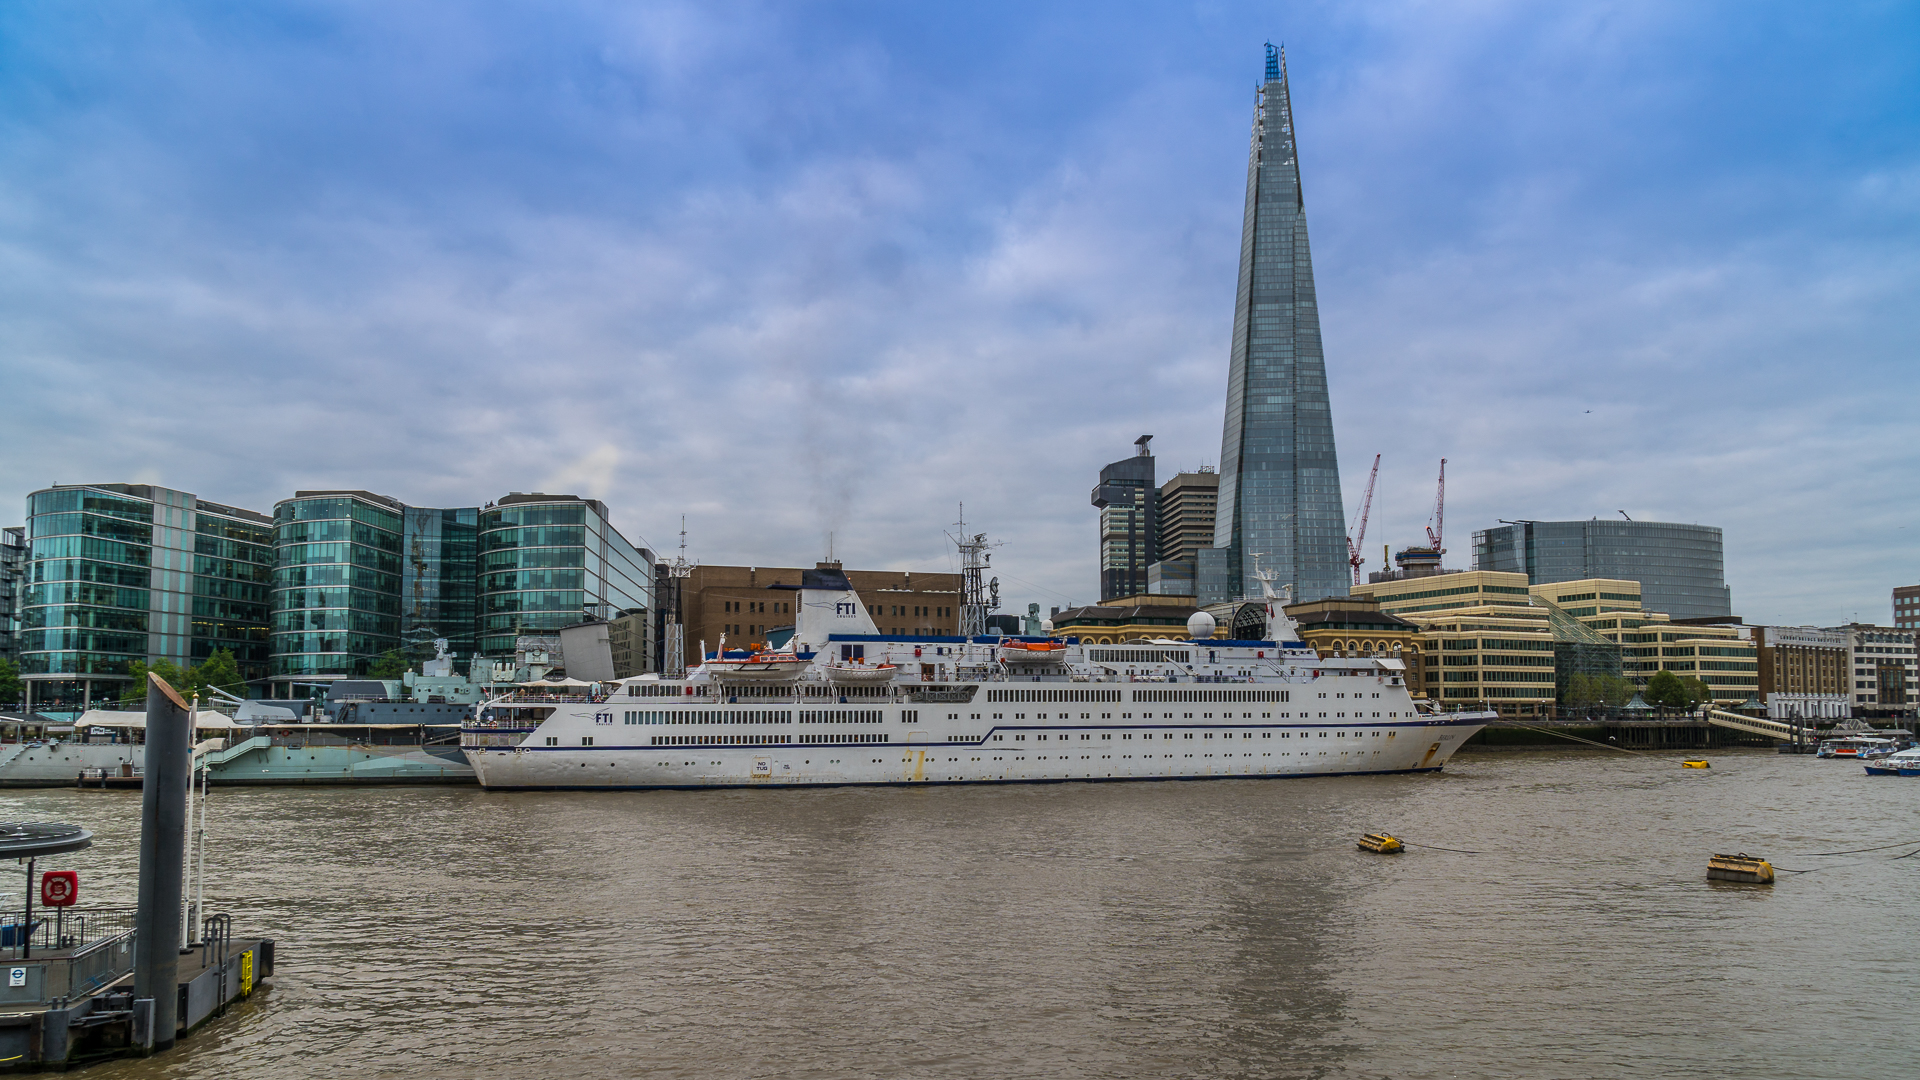 MS Berlin in London